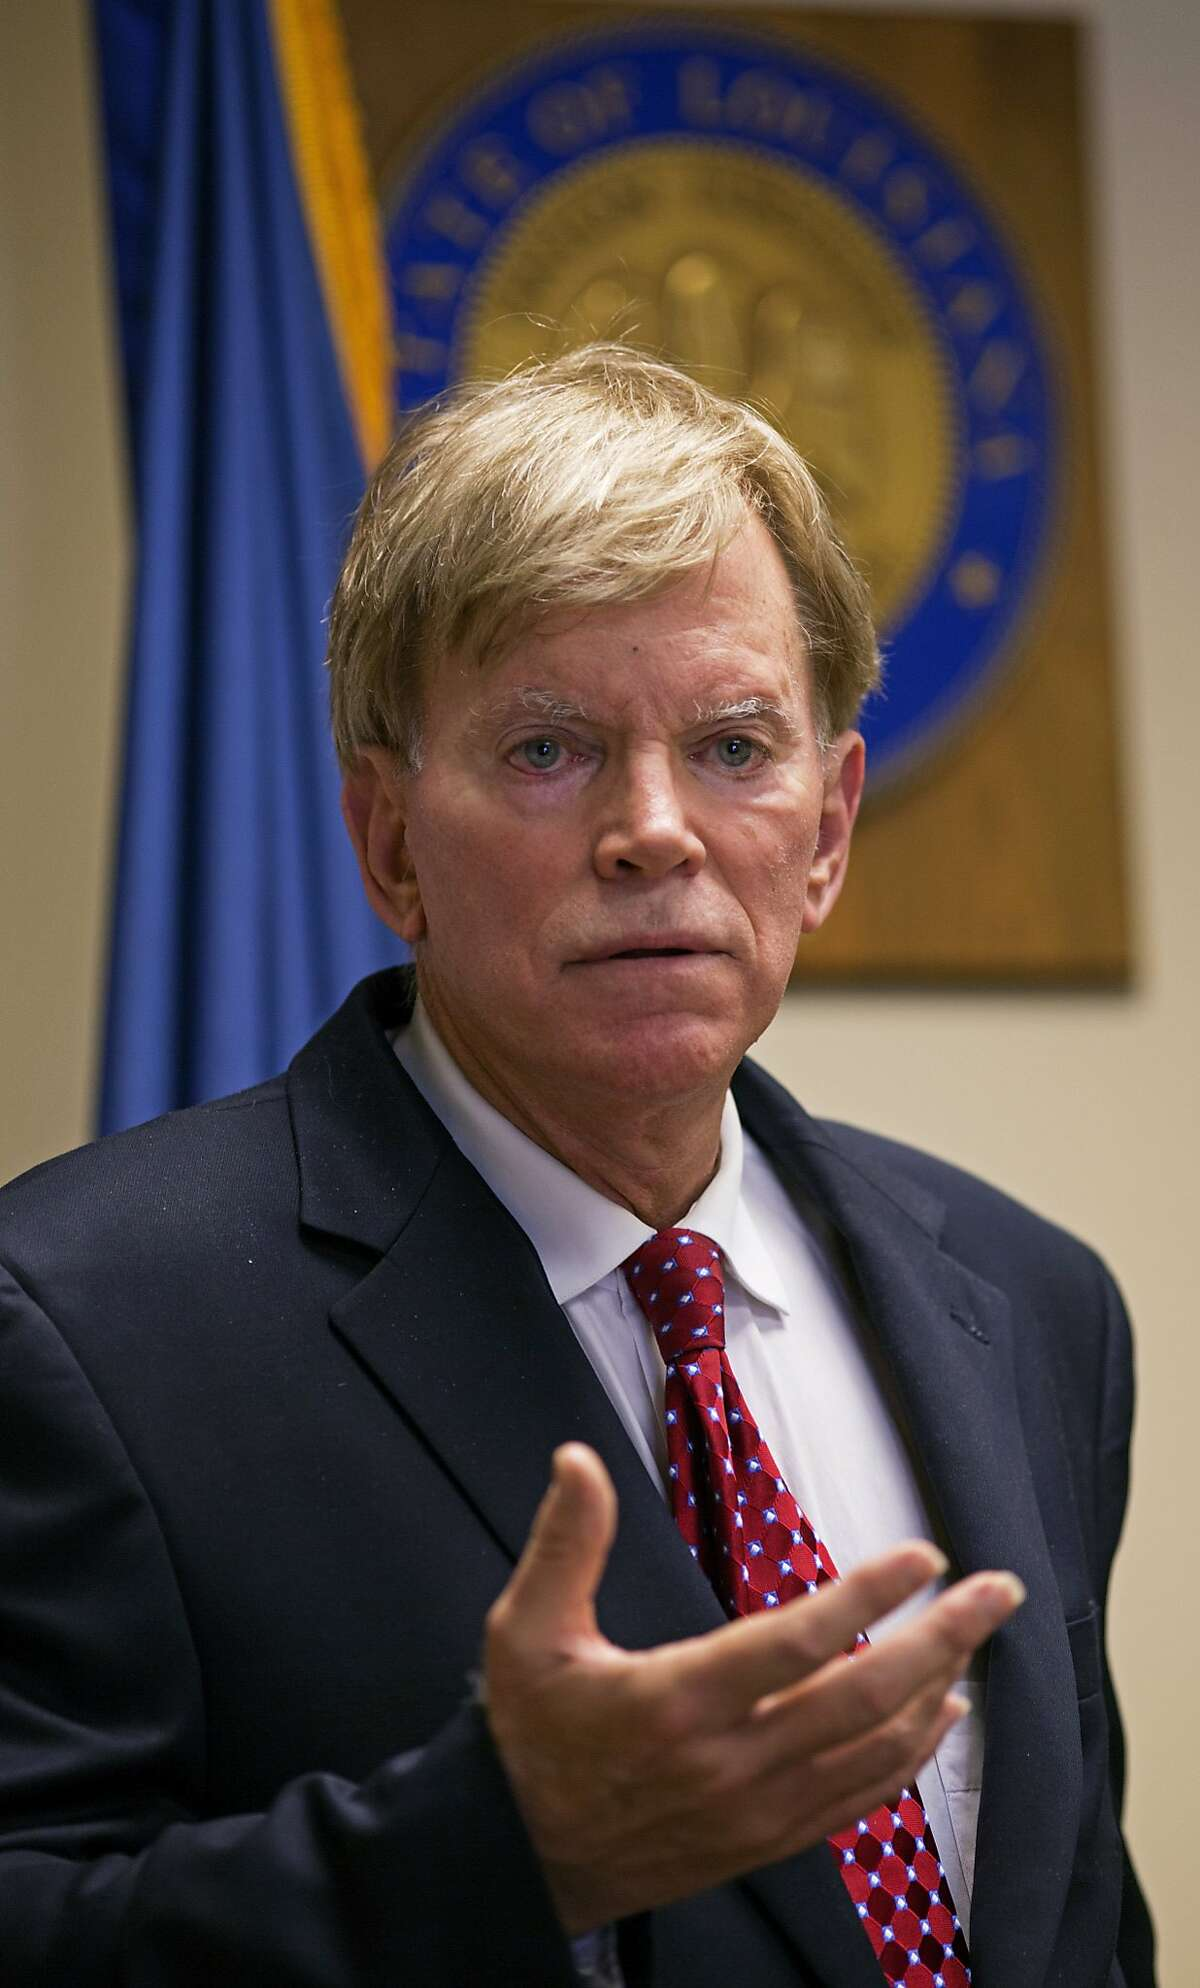 Former Ku Klux Klan leader David Duke talks to the media at the Louisiana Secretary of State's office in Baton Rouge, La., on Friday, March 22, 2016, after registering to run for the U.S. Senate, saying